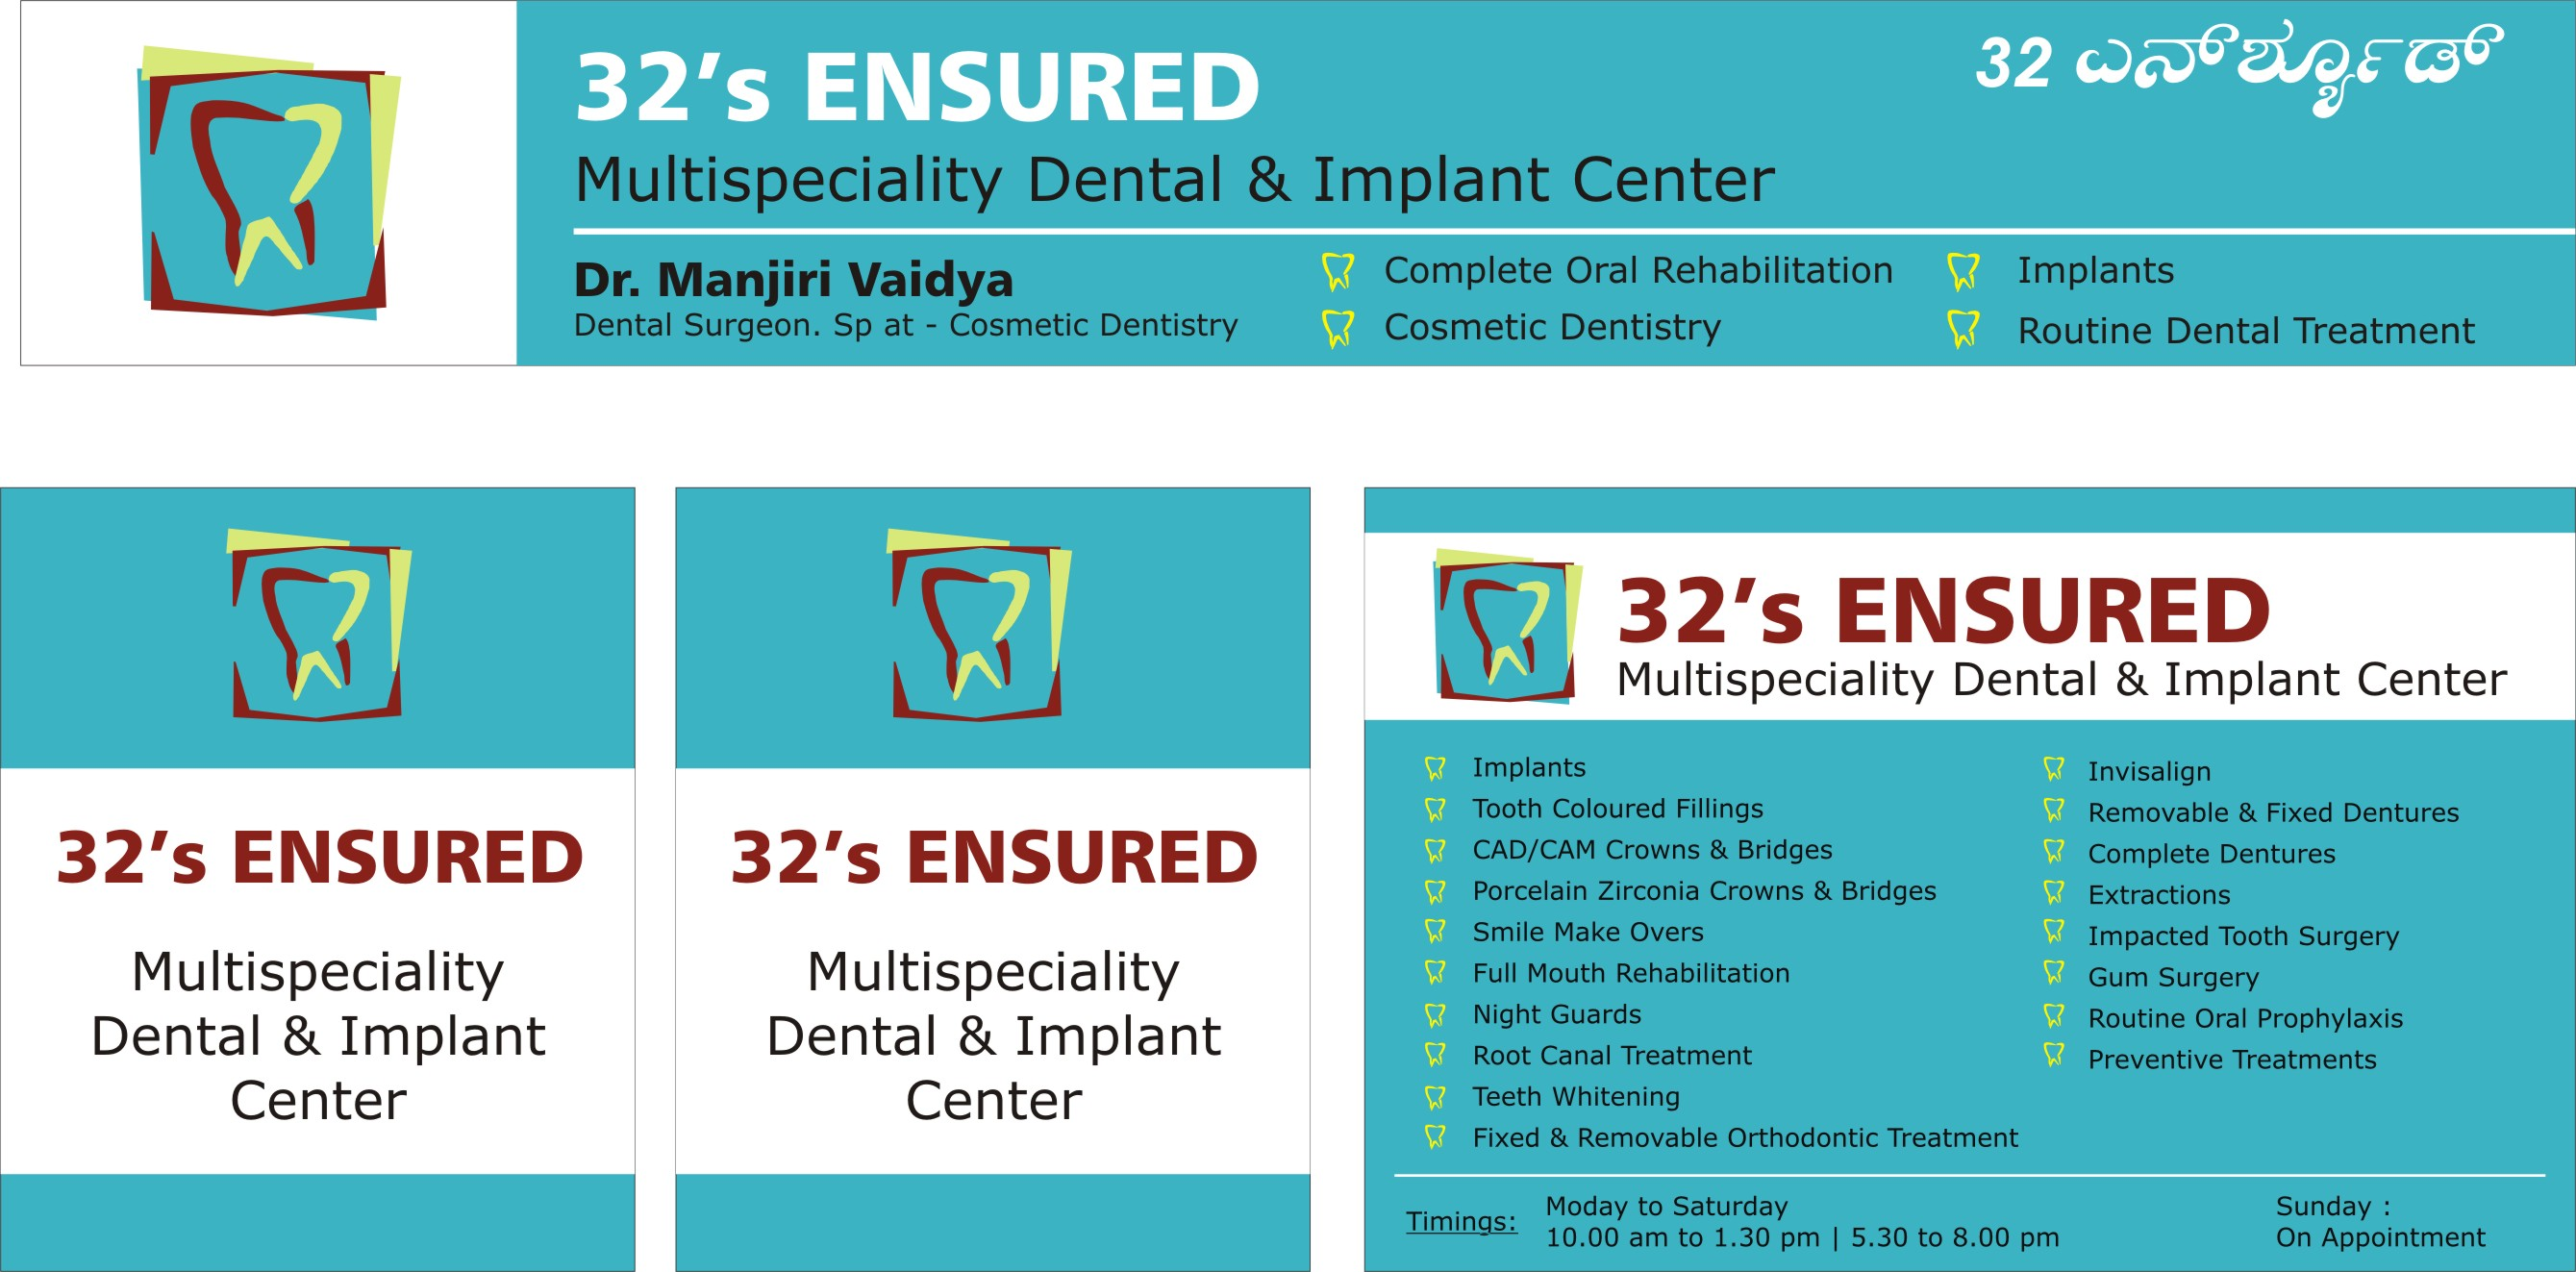 Reviews of 32'S Ensured Multispeciality Dental Clinic